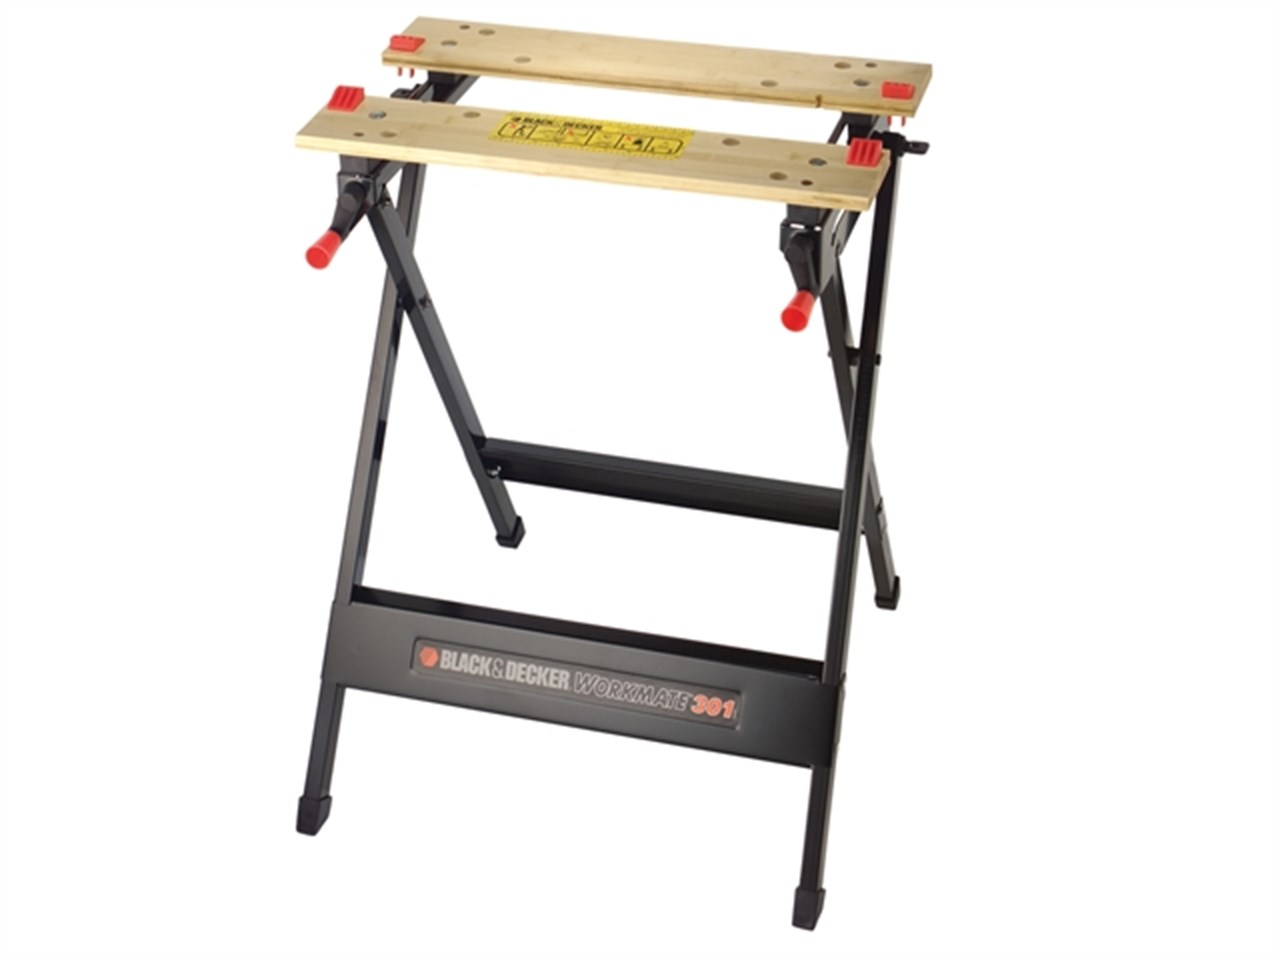 BLACK & DECKER WM301-XJ WORKMATE BENCH - B/DWM301